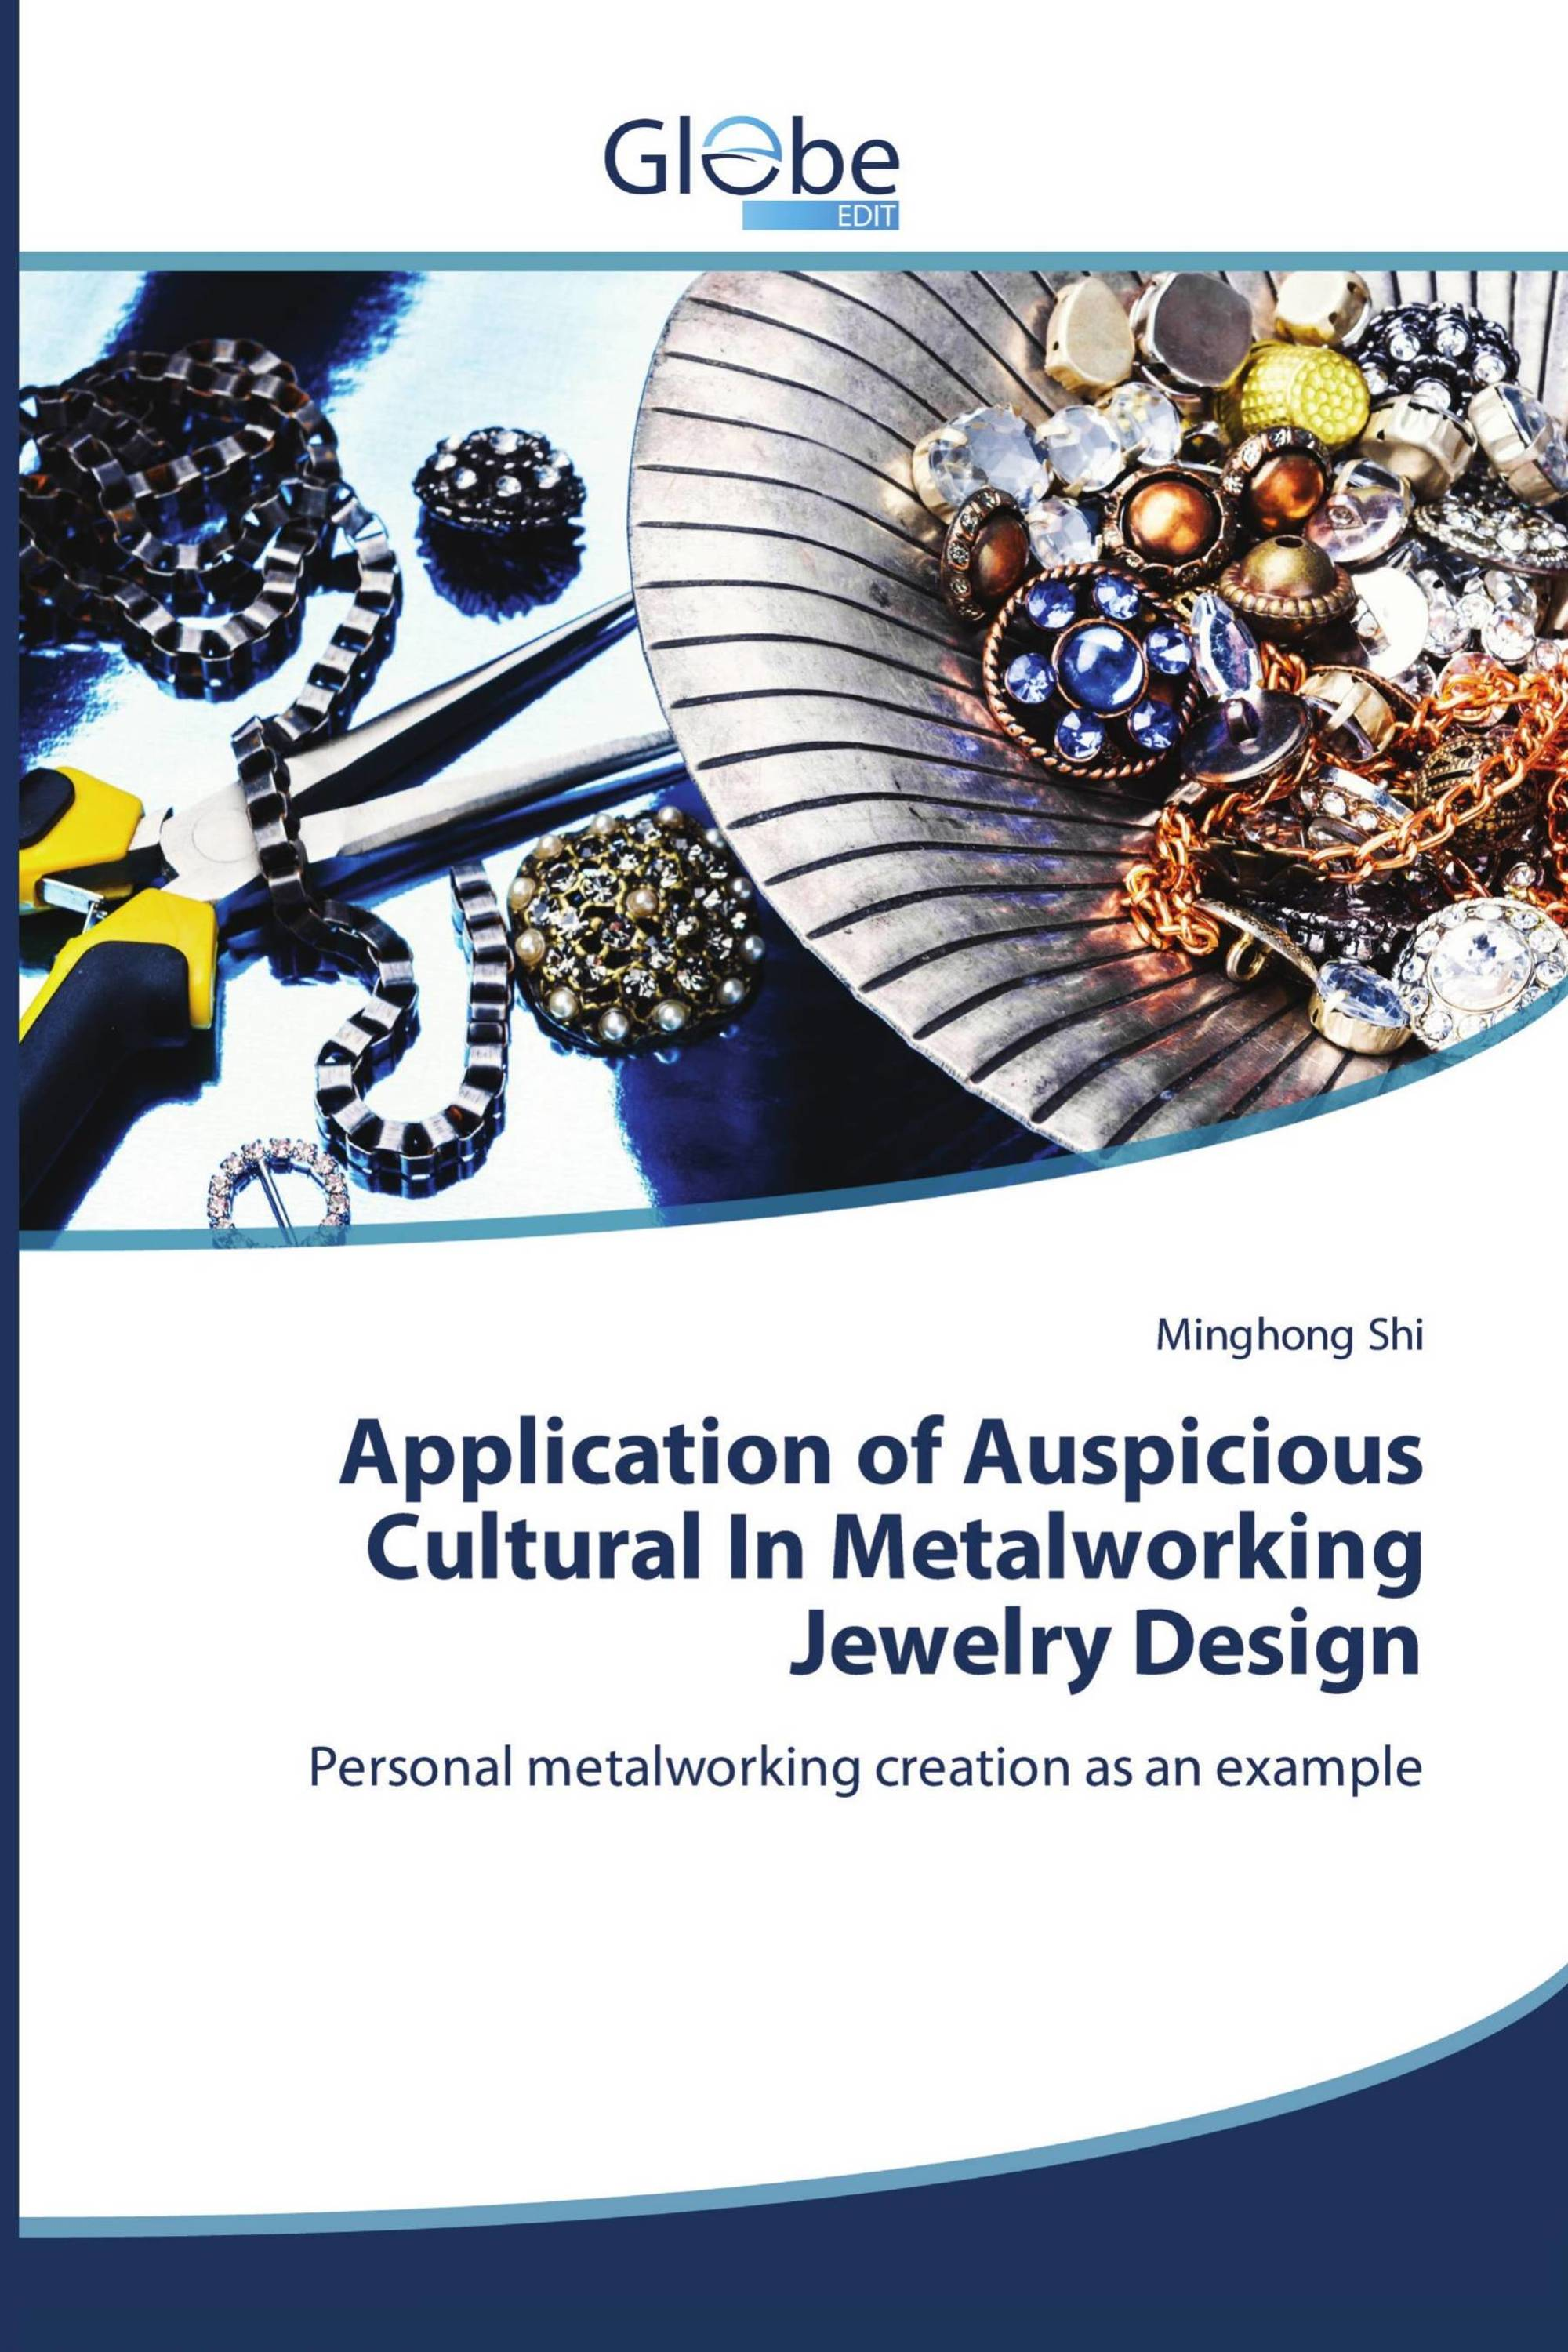 Application of Auspicious Cultural In Metalworking Jewelry Design